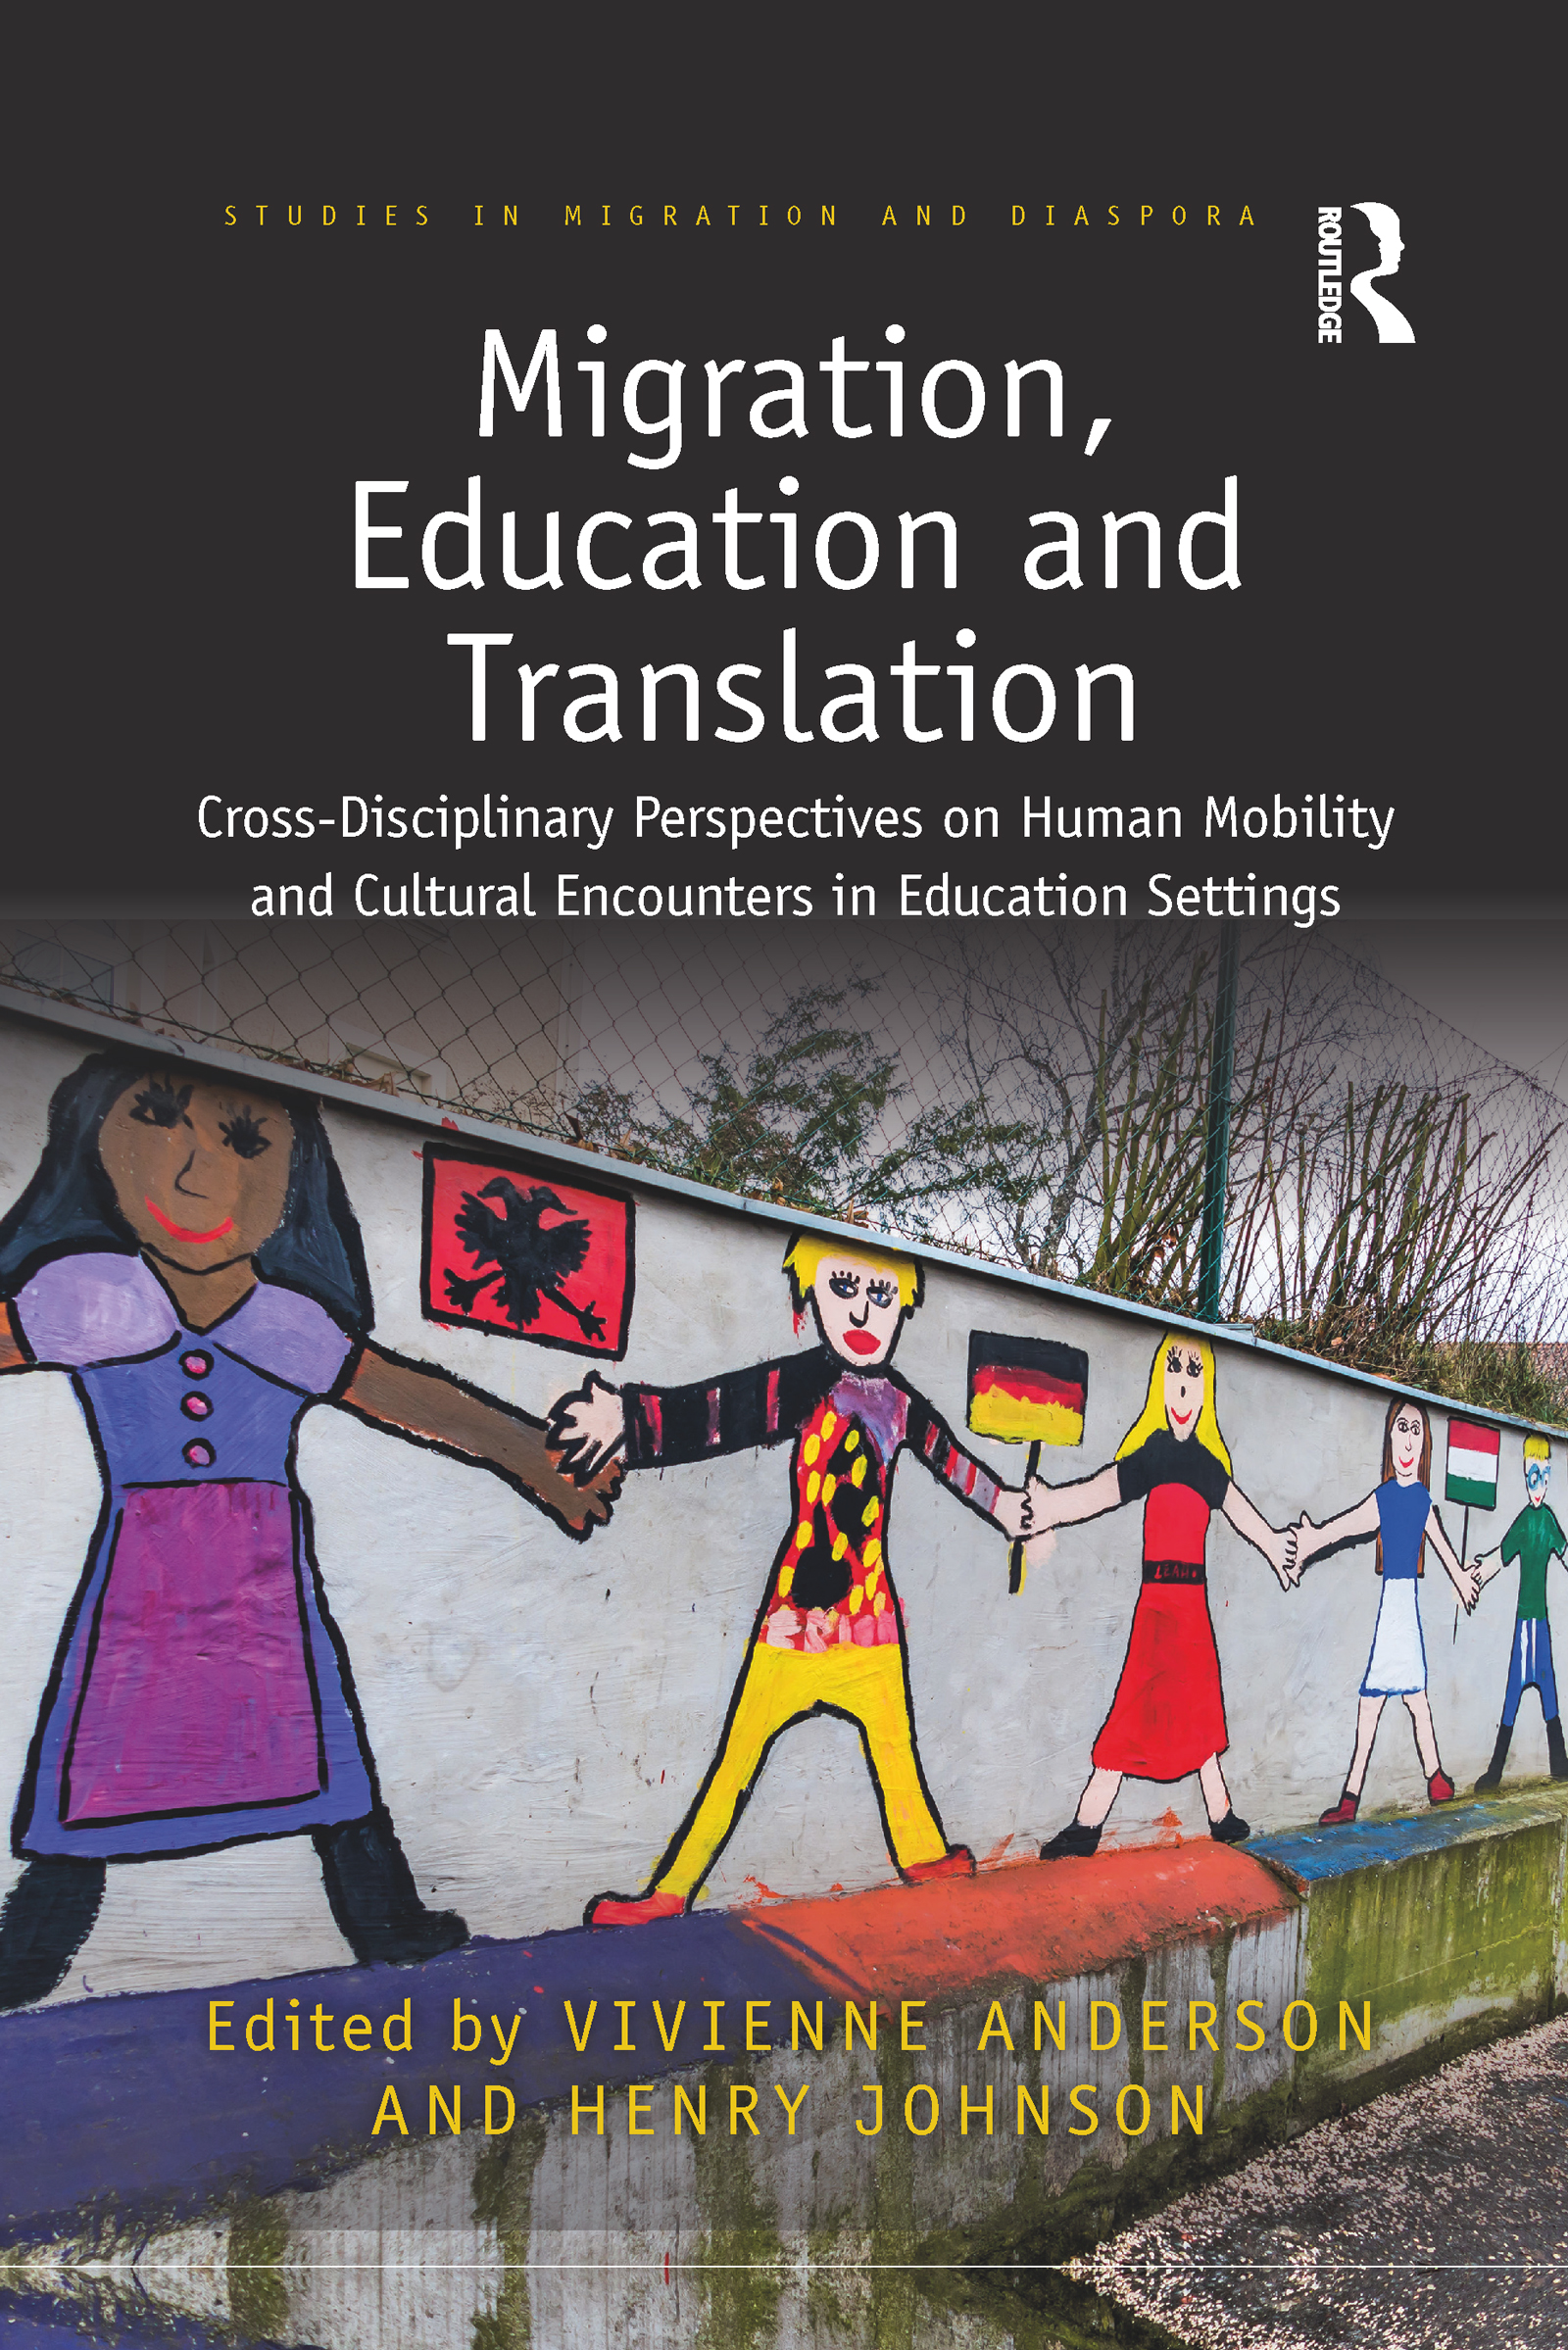 Migration, Education and Translation